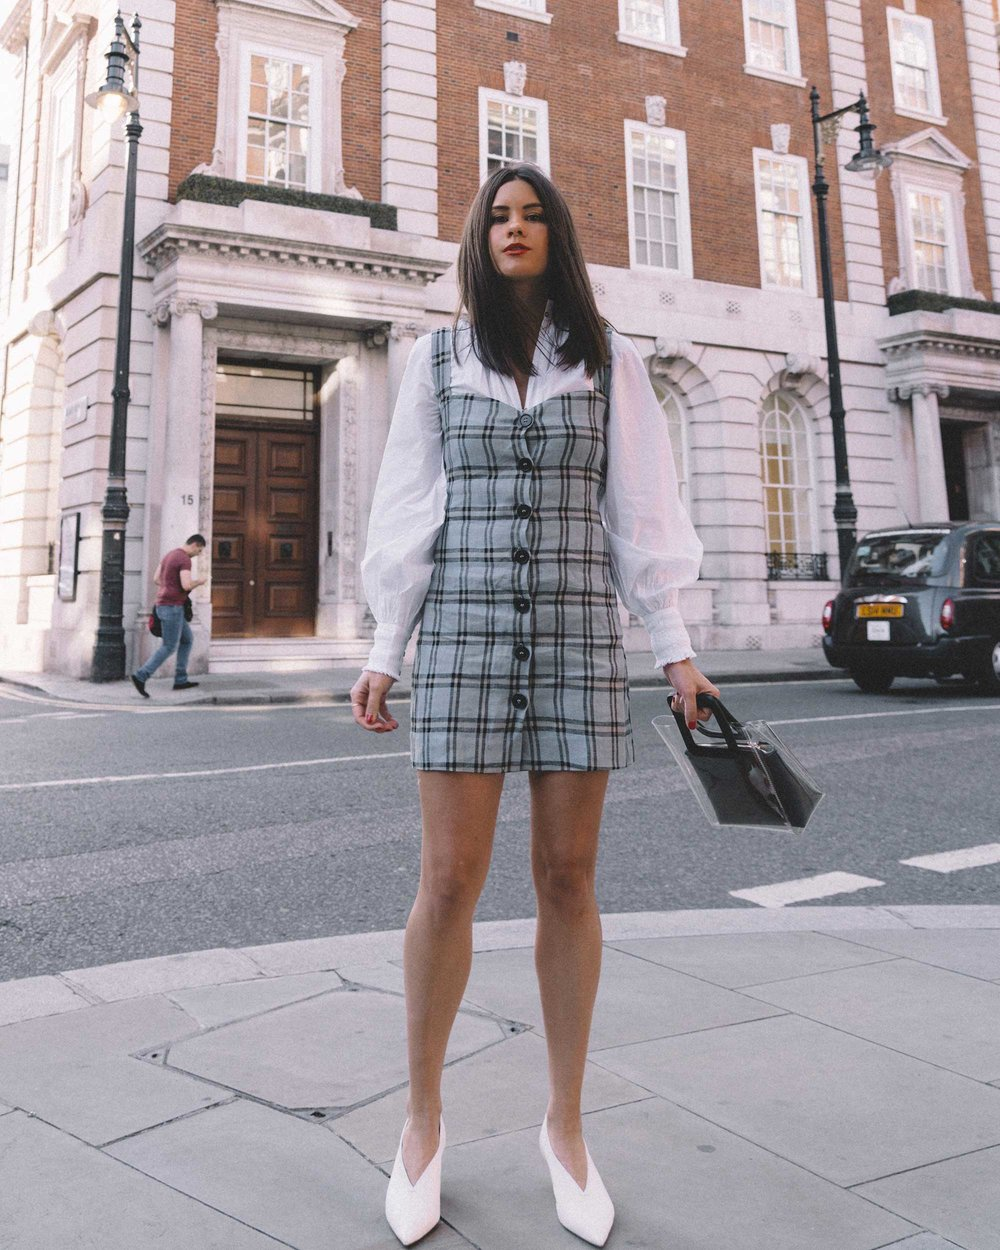 Reformation plaid button front mini dress, Joie Rickelle white blouse Top, London Fashion Week Outfit, Fall Plaid Dress, Fall Plaid Outfit11.jpg